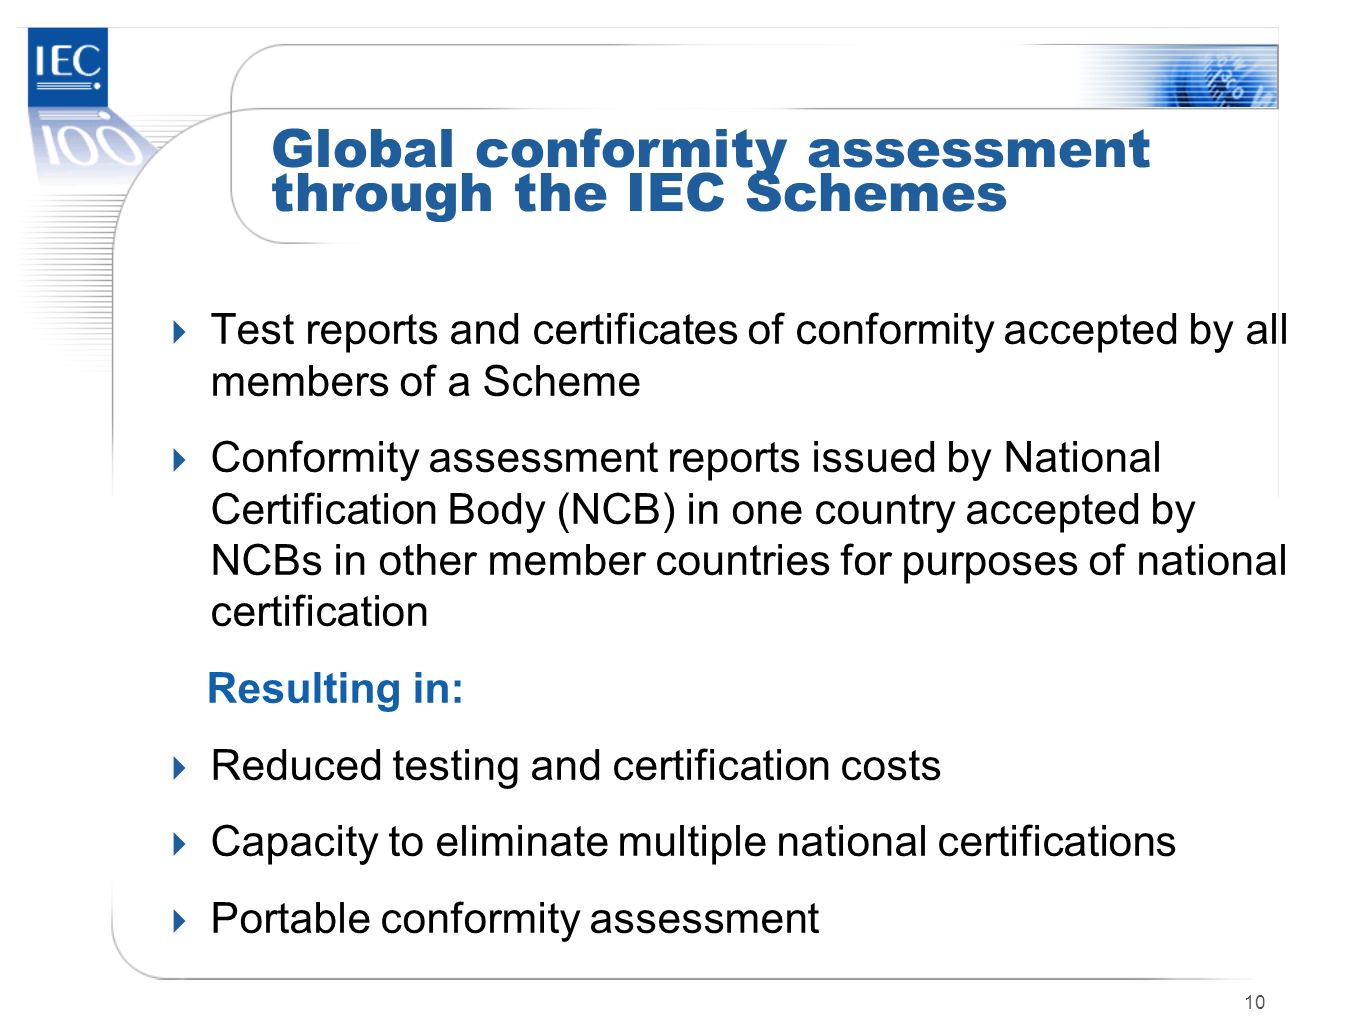 Global conformity assessment through the IEC Schemes